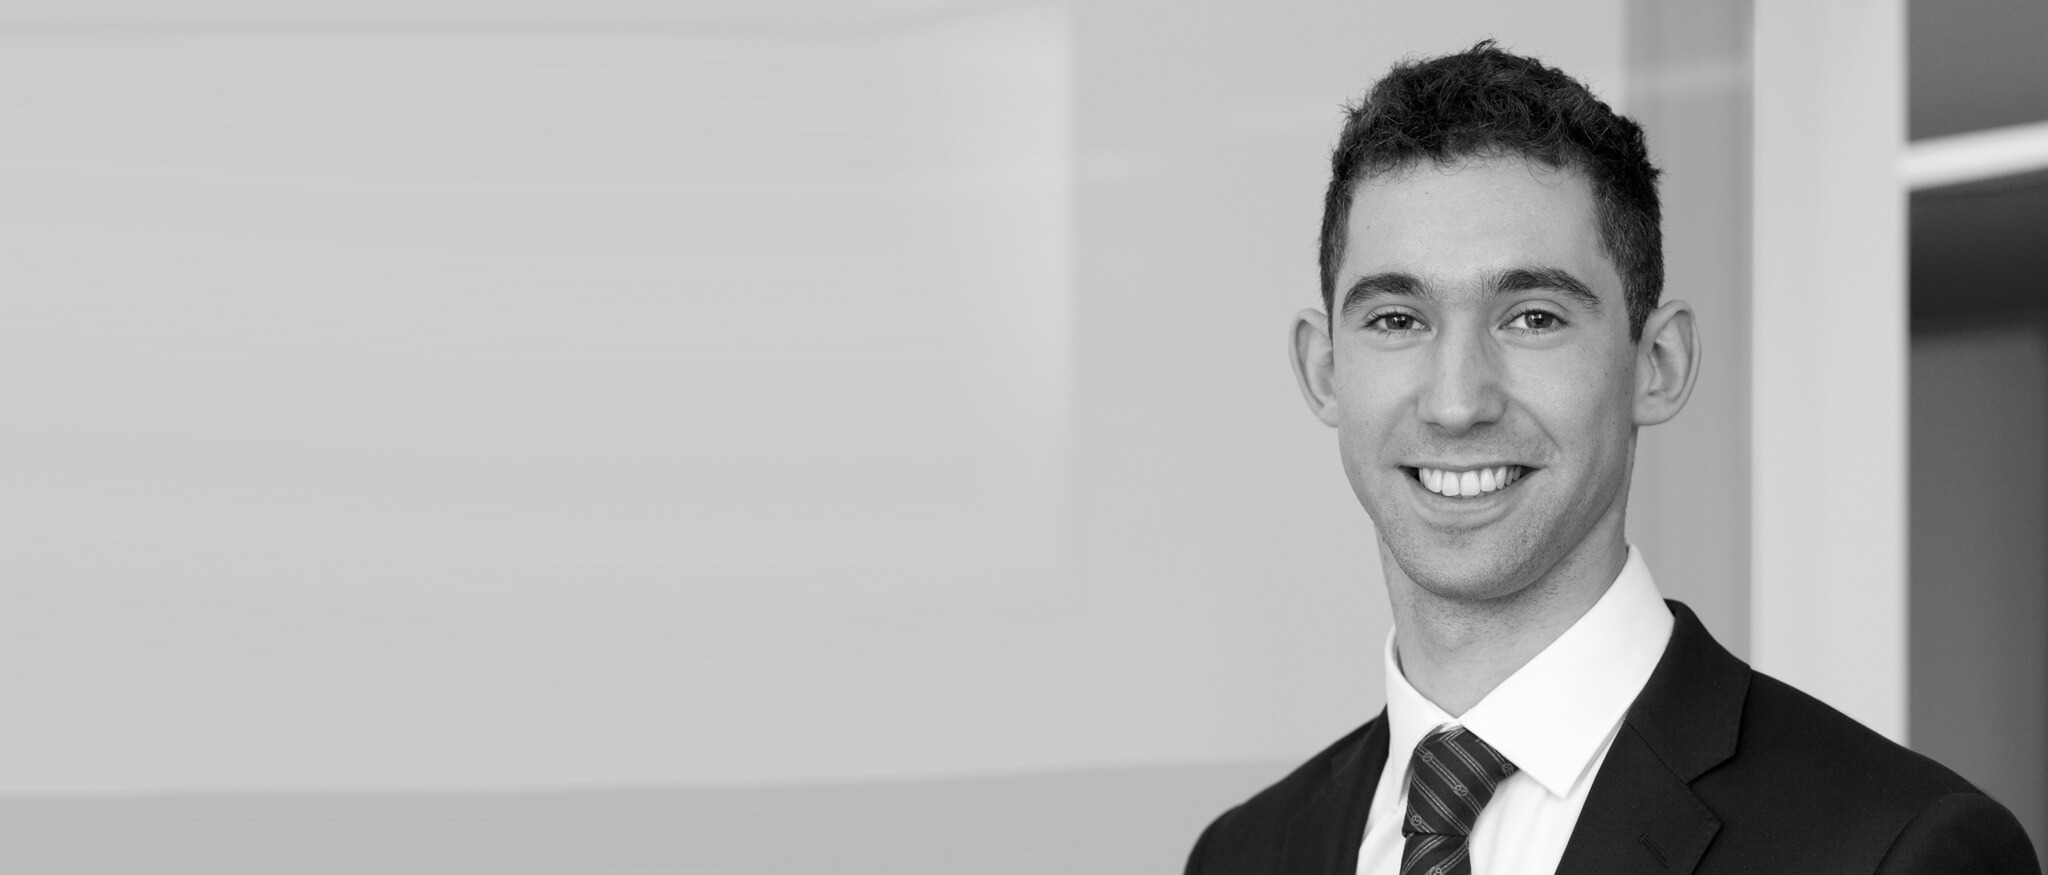 Matt Cowen features in The Lawyer with an article titled 'A Career in Law: Is it for You?'